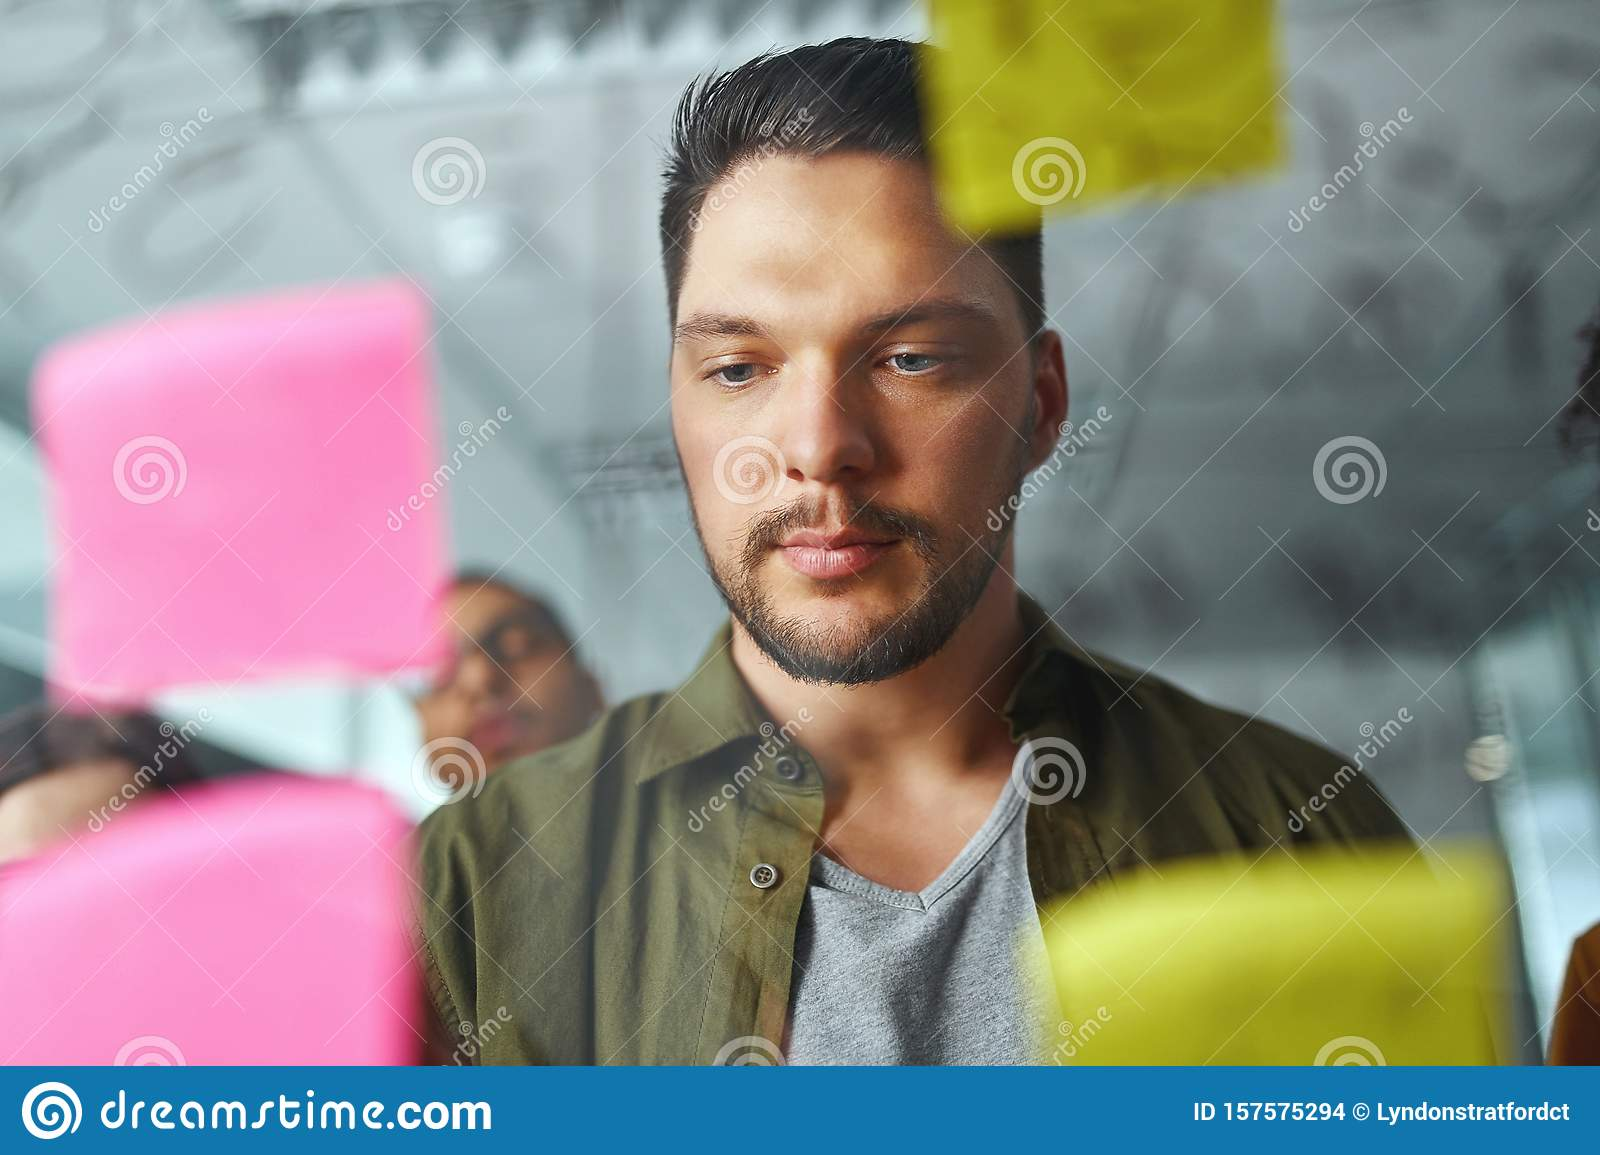 Portrait of a young businessman in casualwear standing behind the transparent glass looking at sticky notes at office